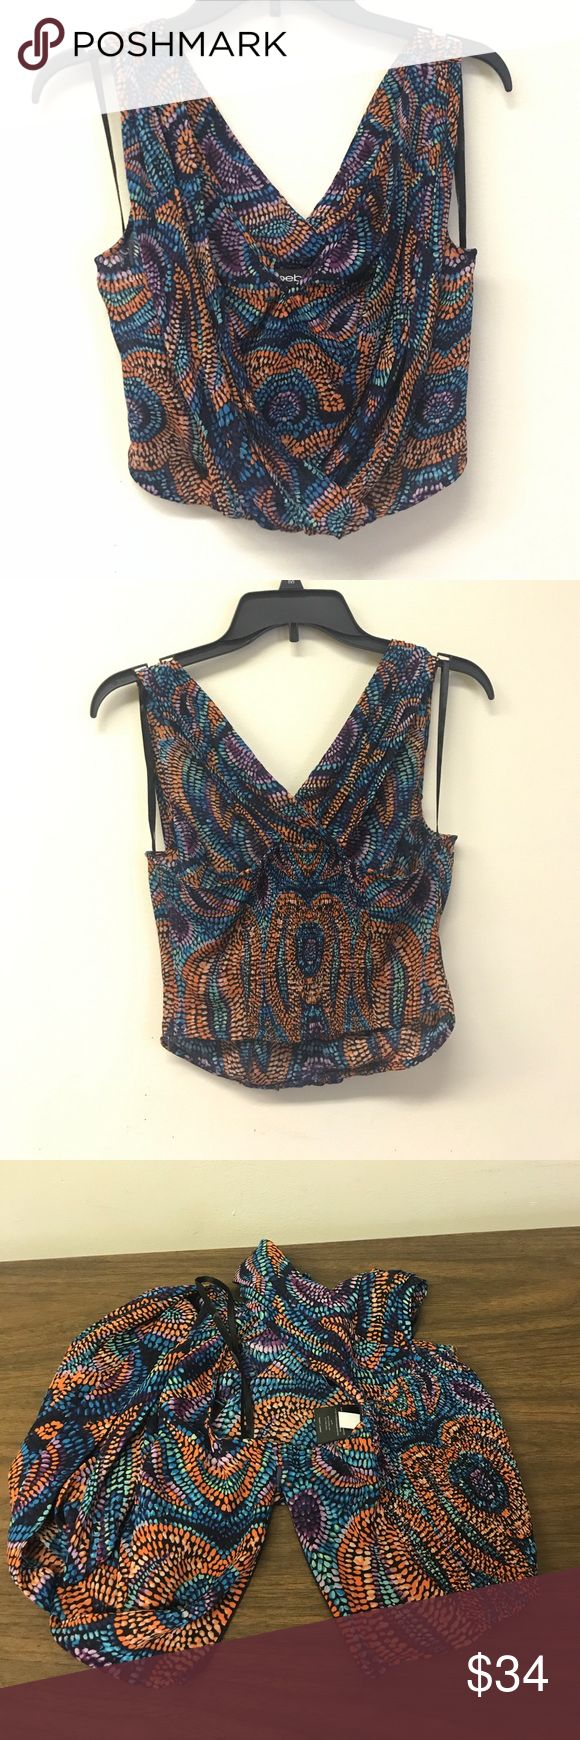 """NWT Bebe Blouse NWT! Bebe size XS Blouse. Multicolor pattern of orange, dark & light purple, mint, & dark & light blue dots over a very dark blue/black base. V neckline with 2 puckered & Draped pieces that cross over one another on front. Hidden zipper up left side hem for easy on/off. V back with a puckered elastic stretch panel down center back. Slightly cropped- looks great with high waisted pants. Length: 17"""". 100% Polyester. Price tag: $69.00 bebe Tops Blouses"""